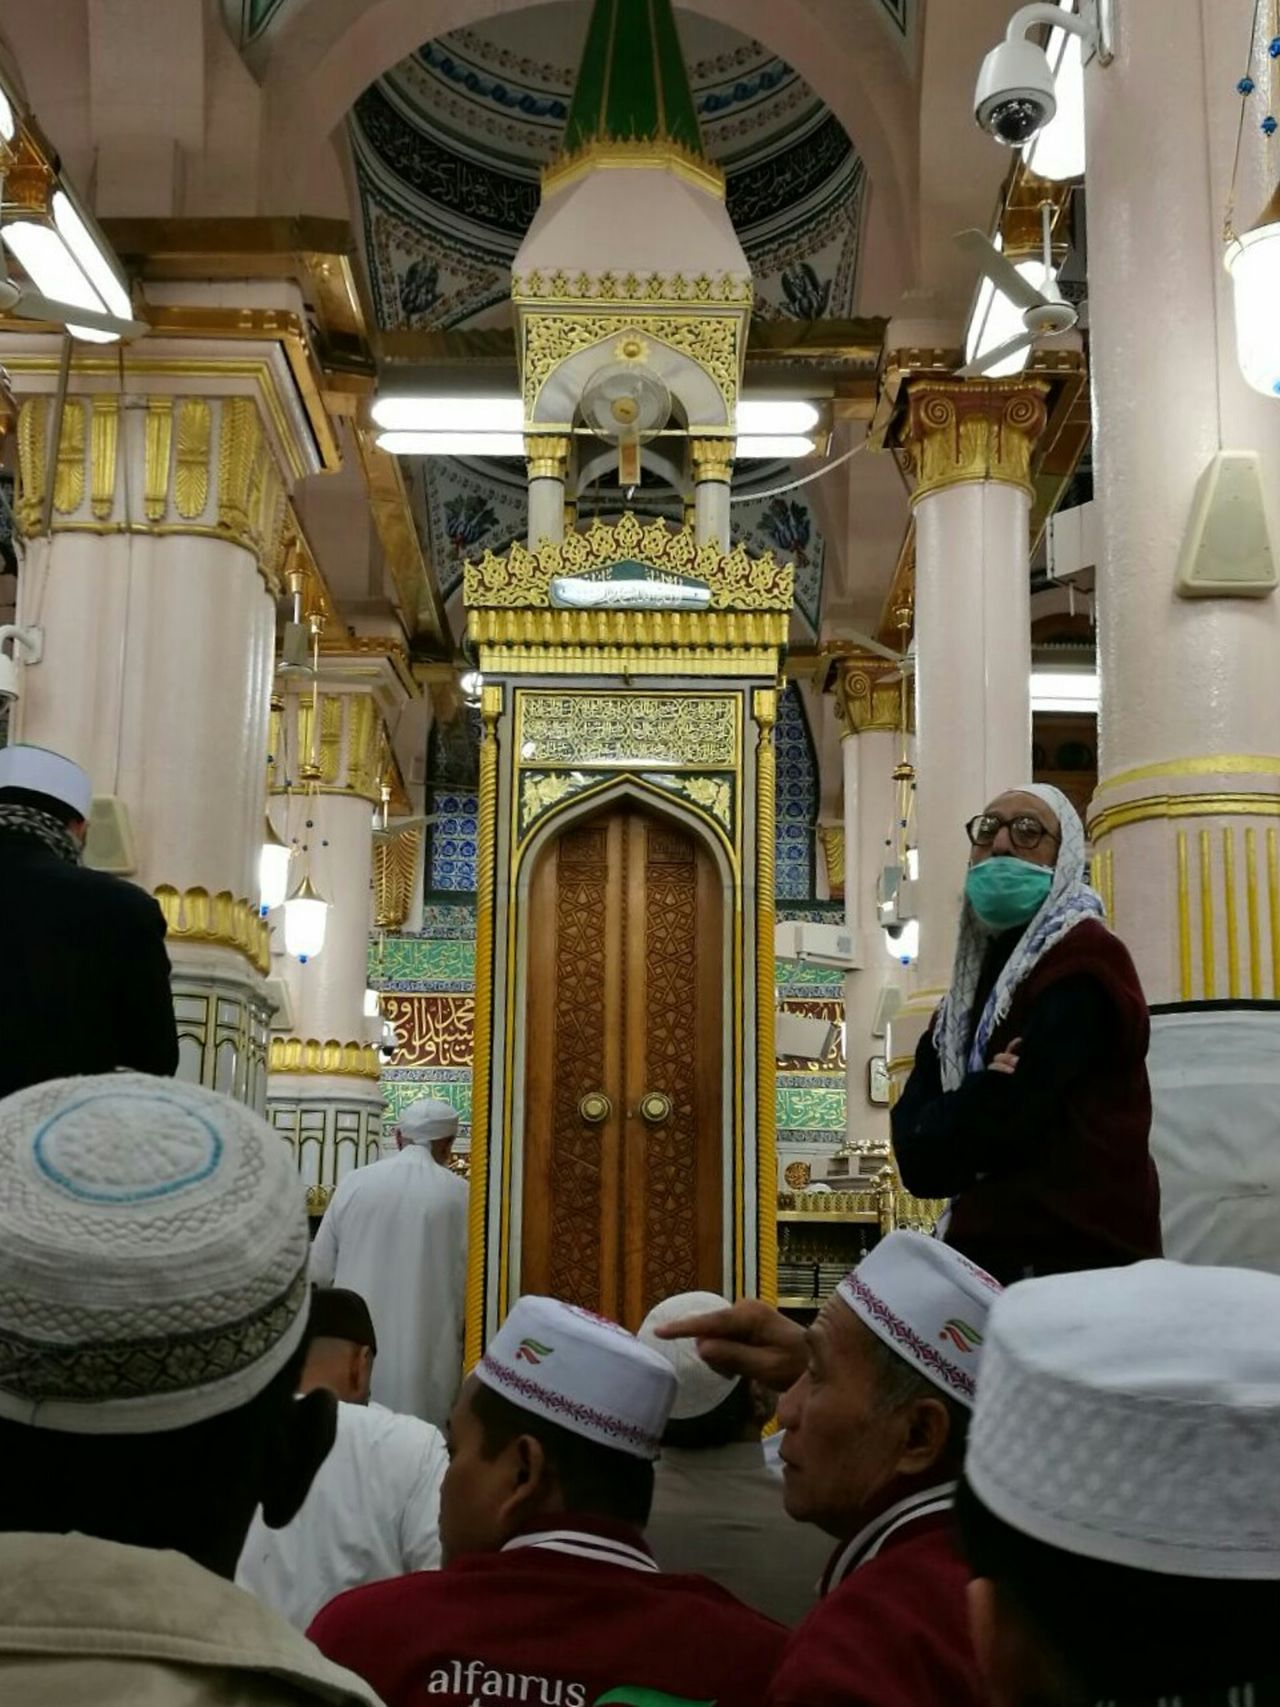 Muslim pray in the holy mosque Religion Travel Spirituality Place Of Worship Praying Travel Destinations People Sitting Architecture Indoors  Architectural Detail Mecca Medina Muslim Islam Worship Adult Believe Allah AllahuAkbar Allah Is The Almighty Mosque Masjid Group Of People faith Faith, Belief, Worship, Creed; Sect, Mosque, Cult, Denomination